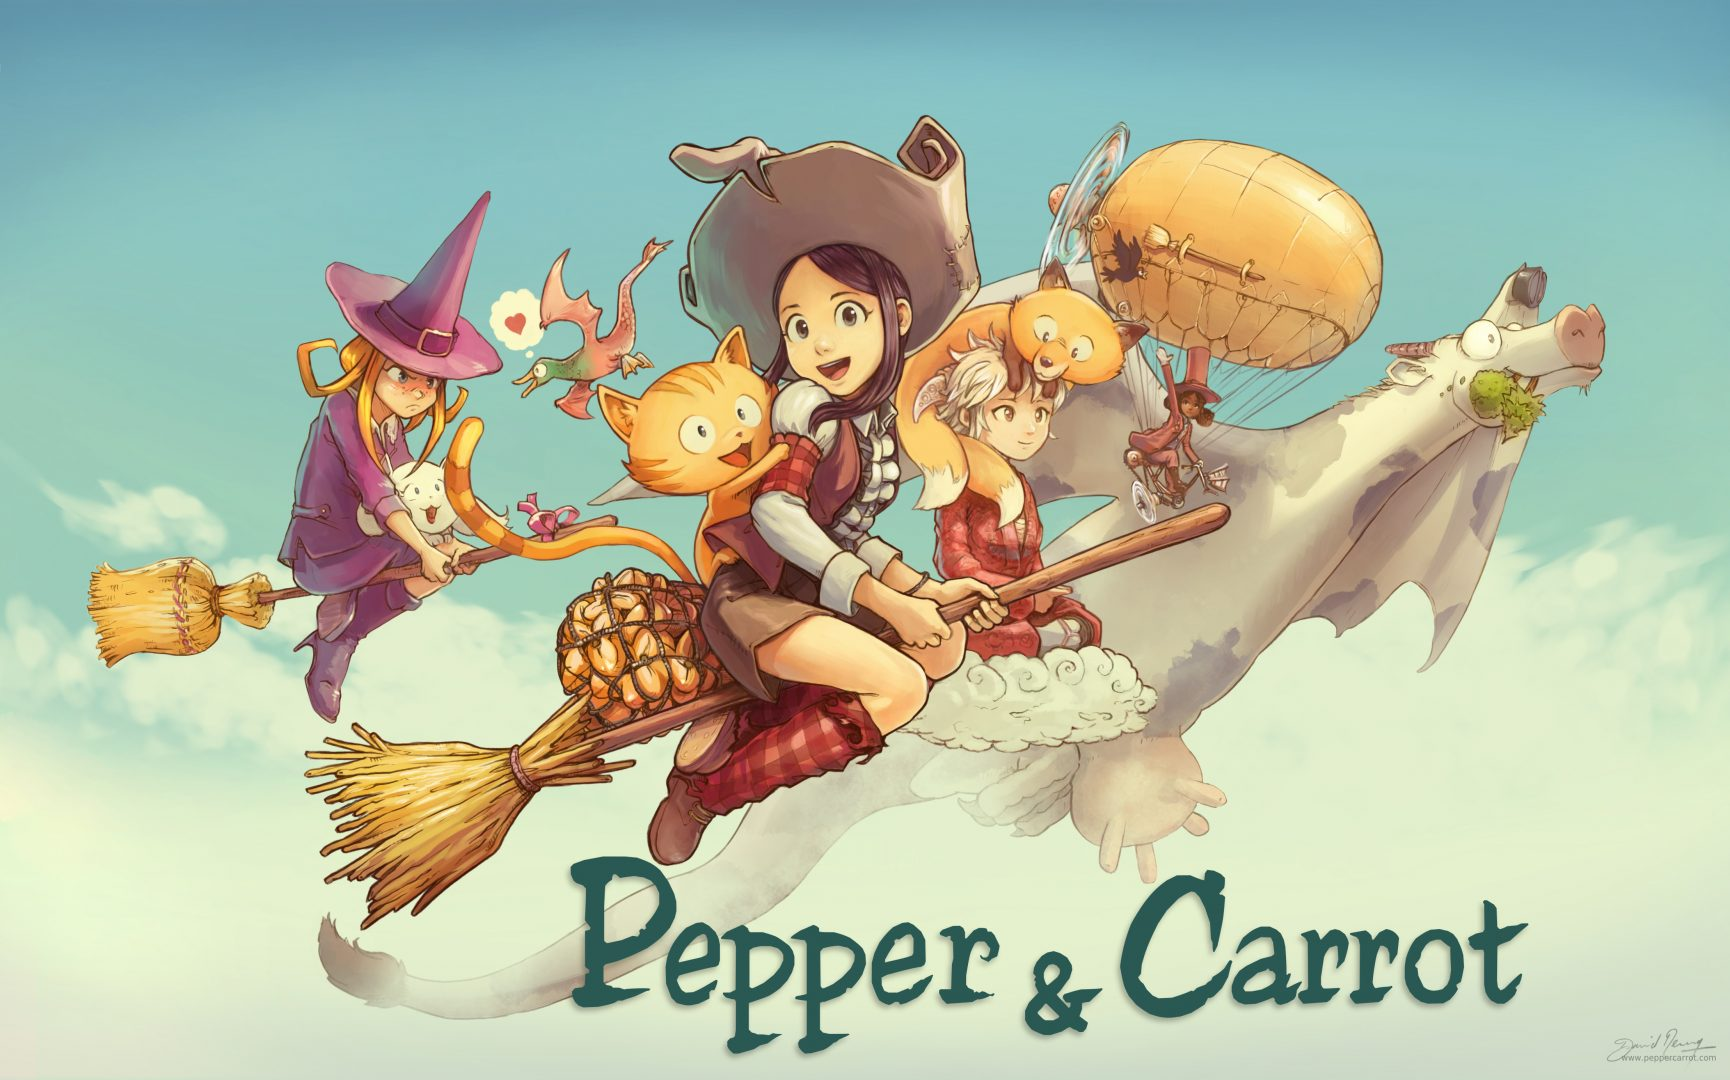 Pepper & Carrot episodios 1-4